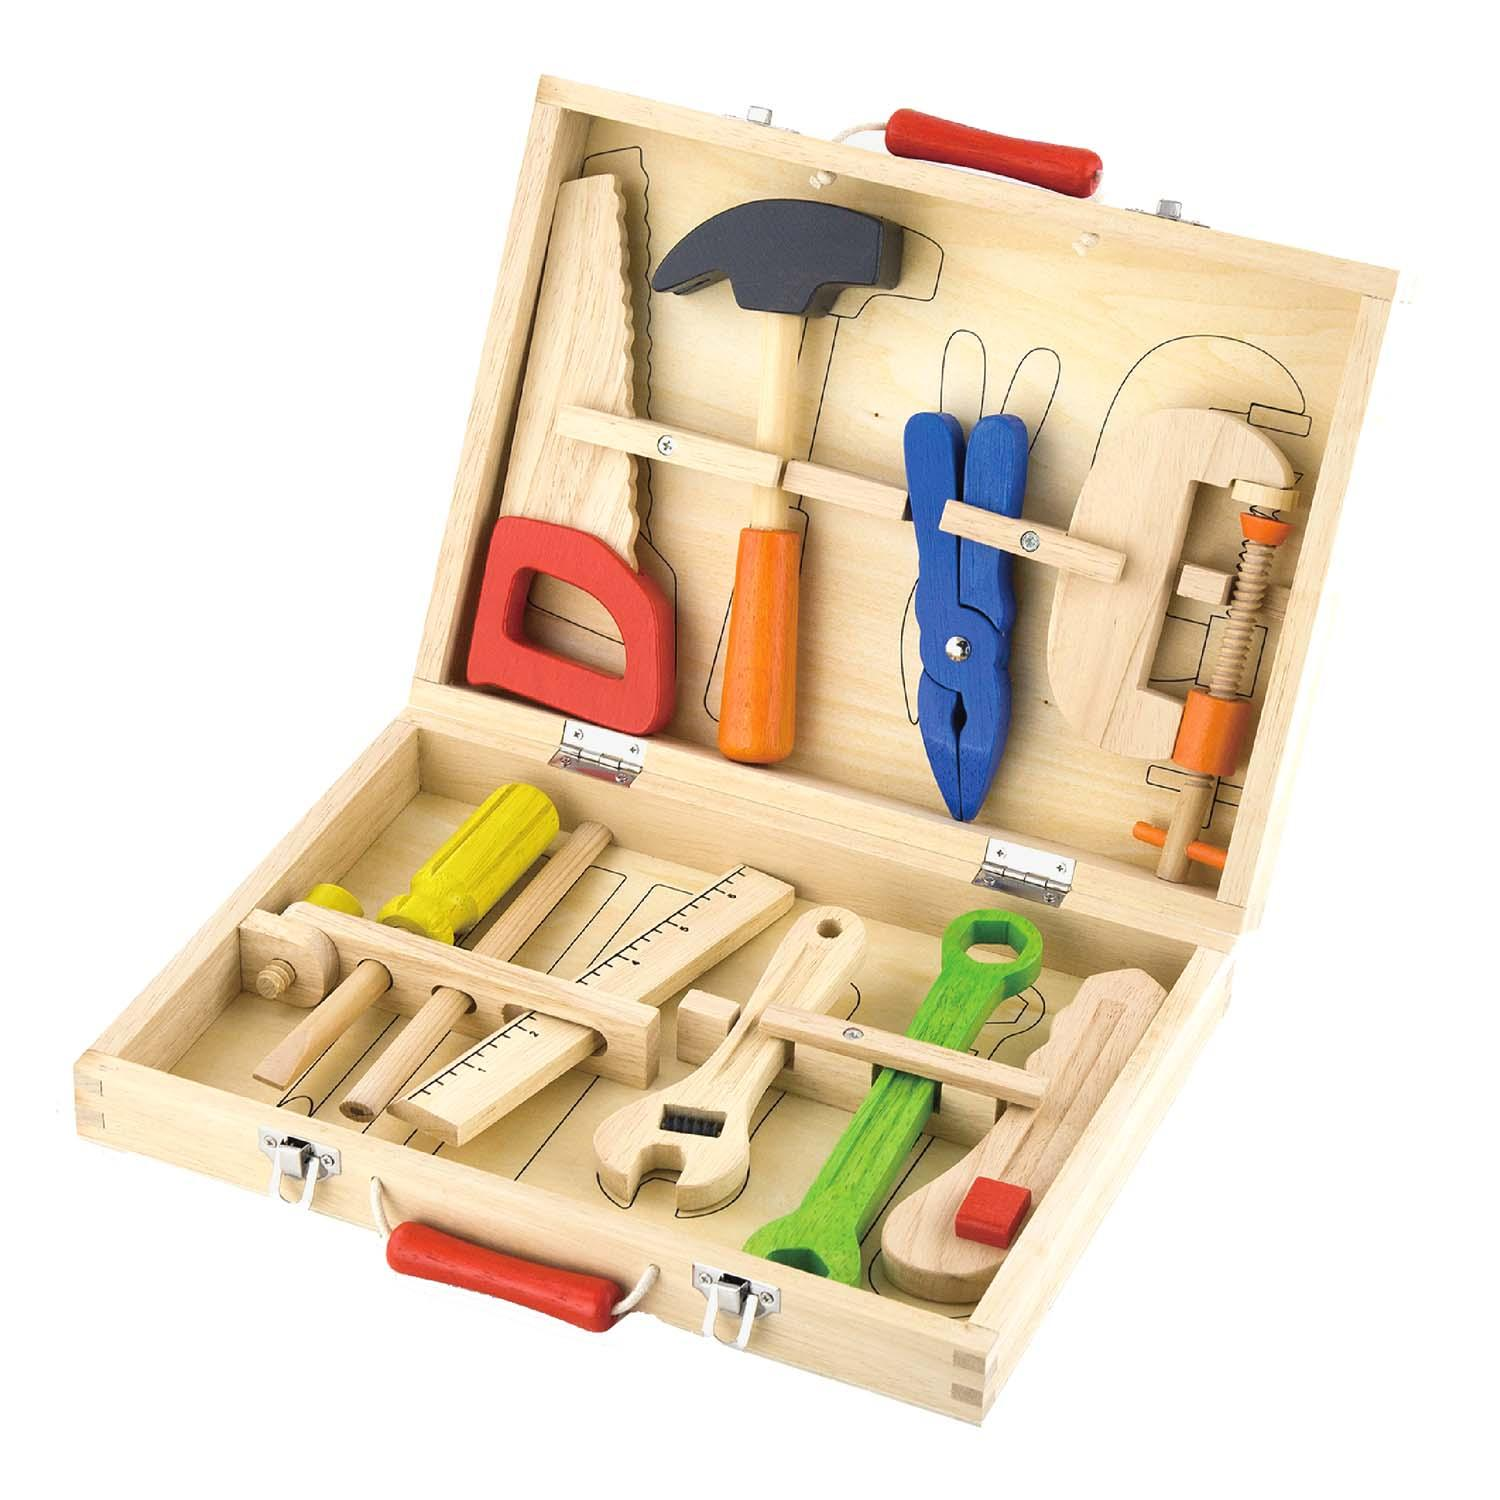 Toy Tools For Boys : Childrens wood piece play toy tool box kit set